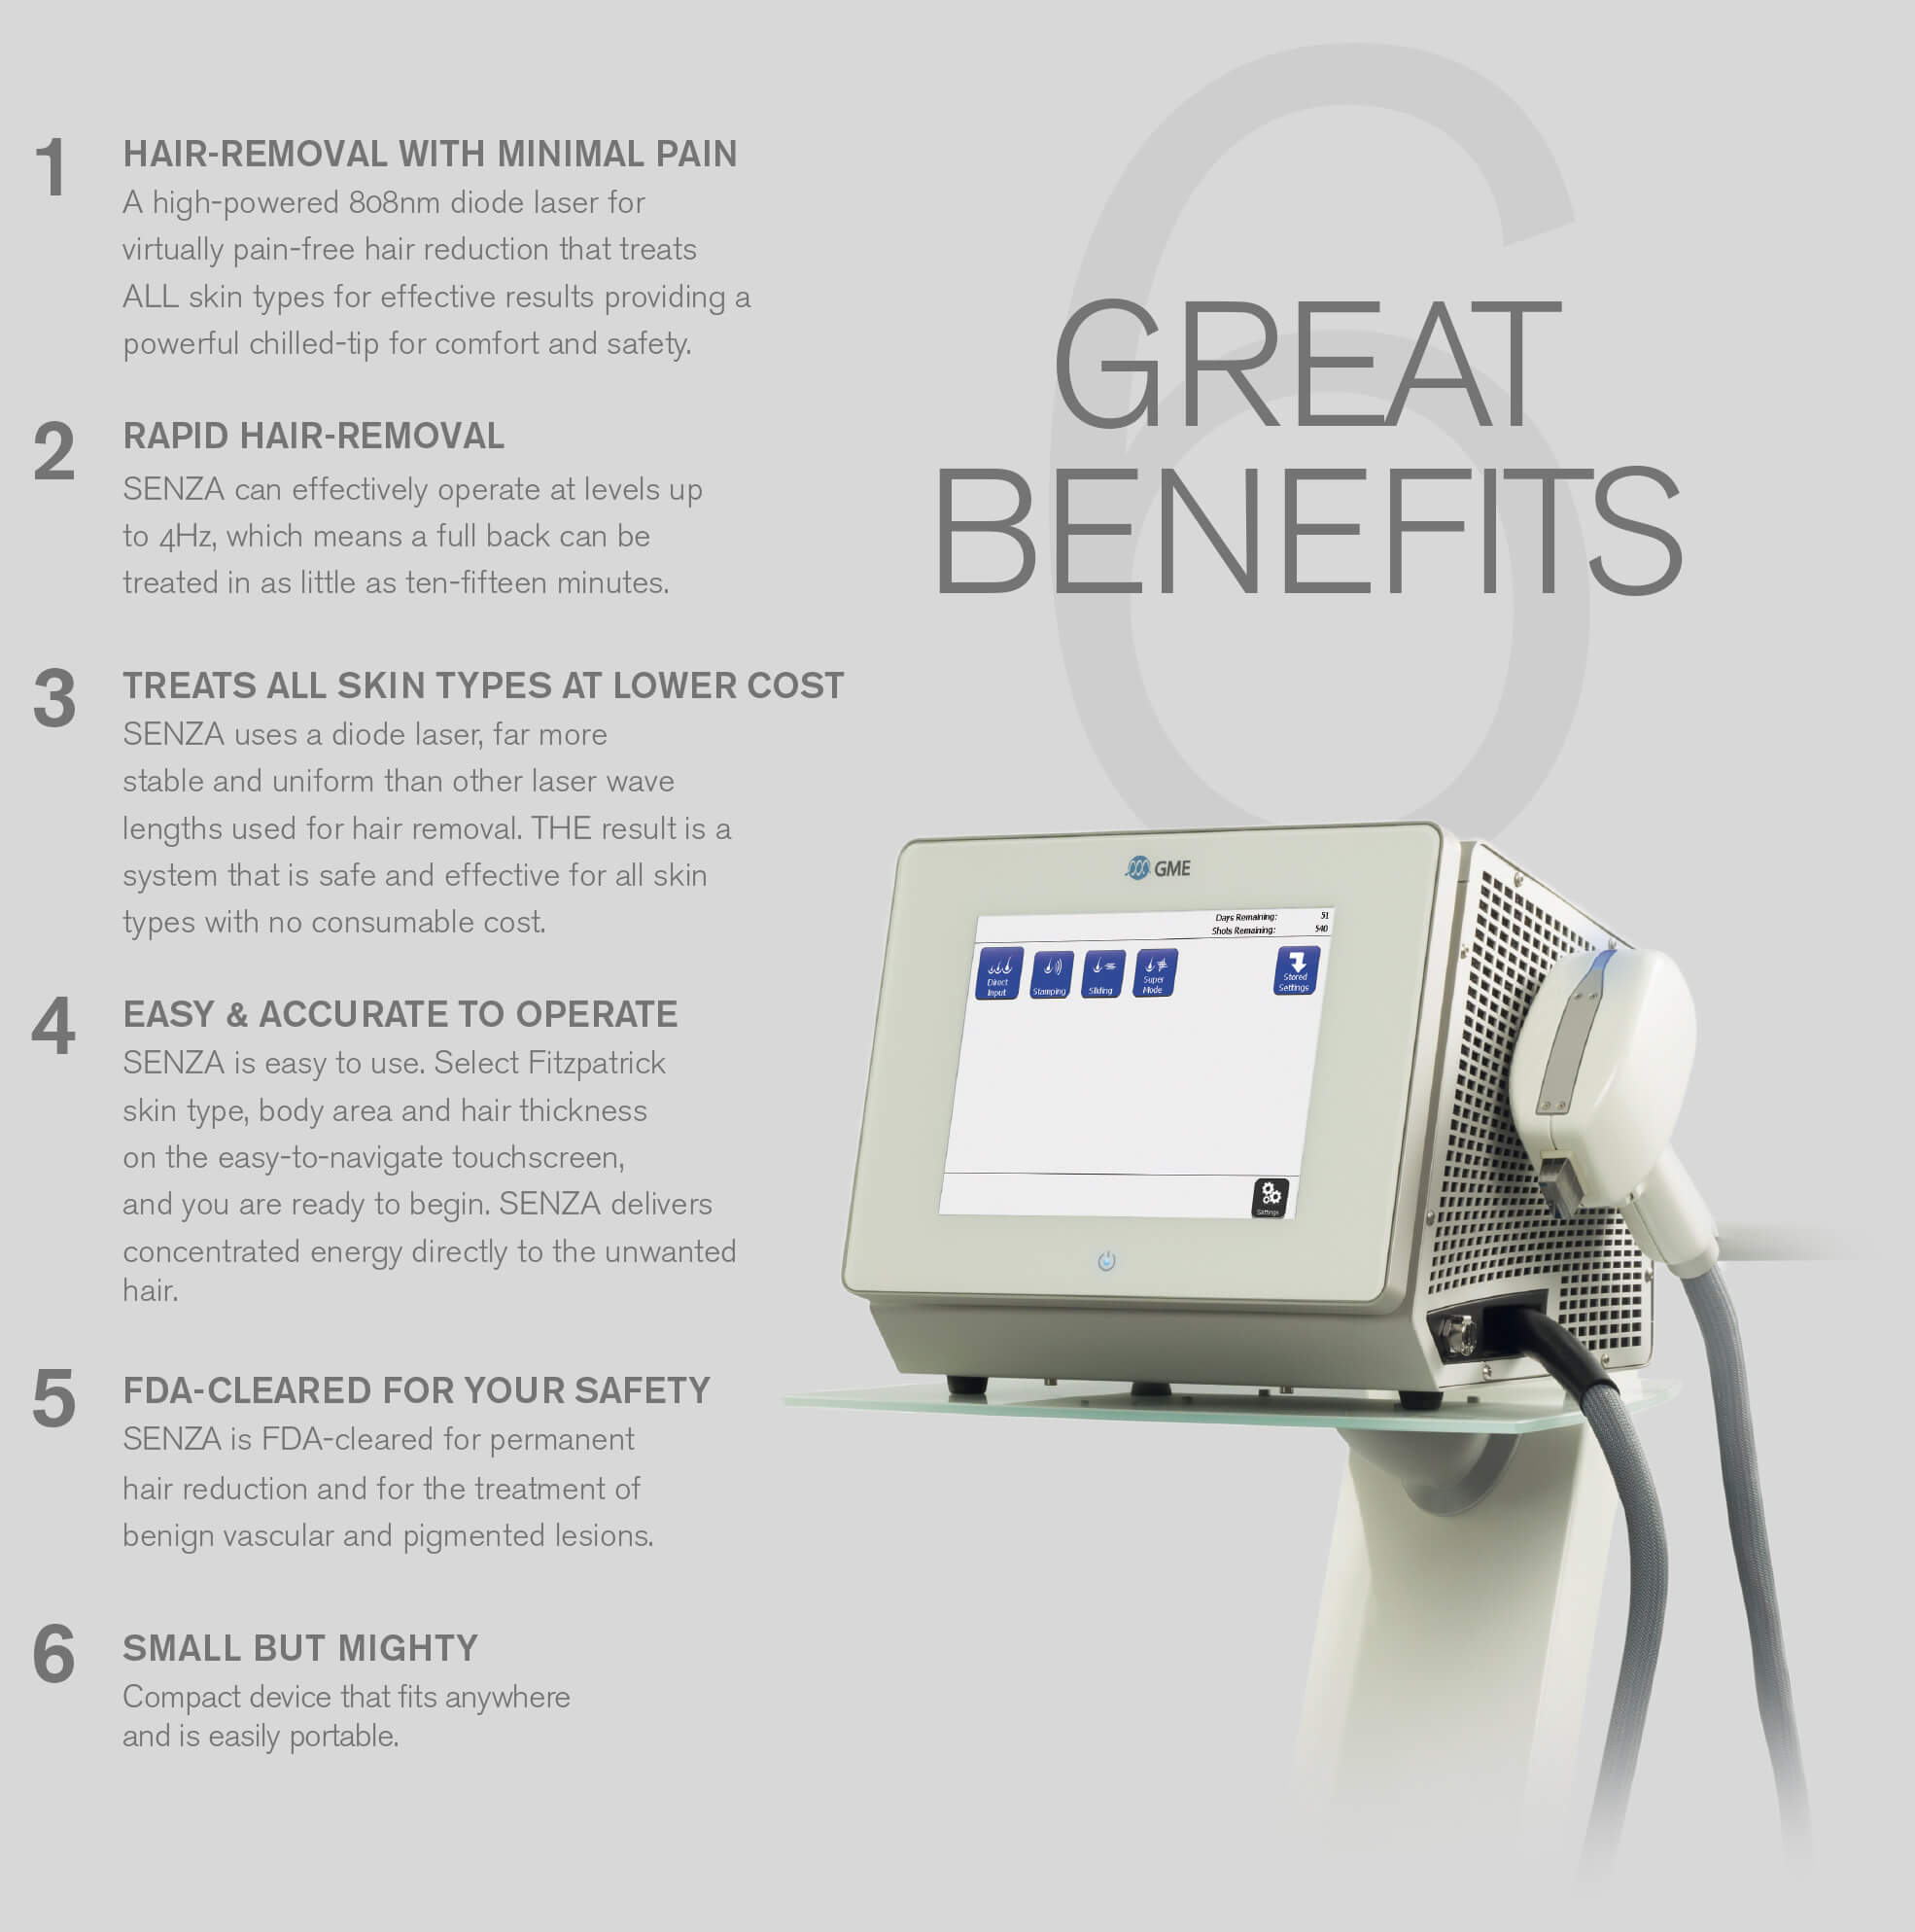 Senza Laser Hair Removal Aesthetics Biomedical